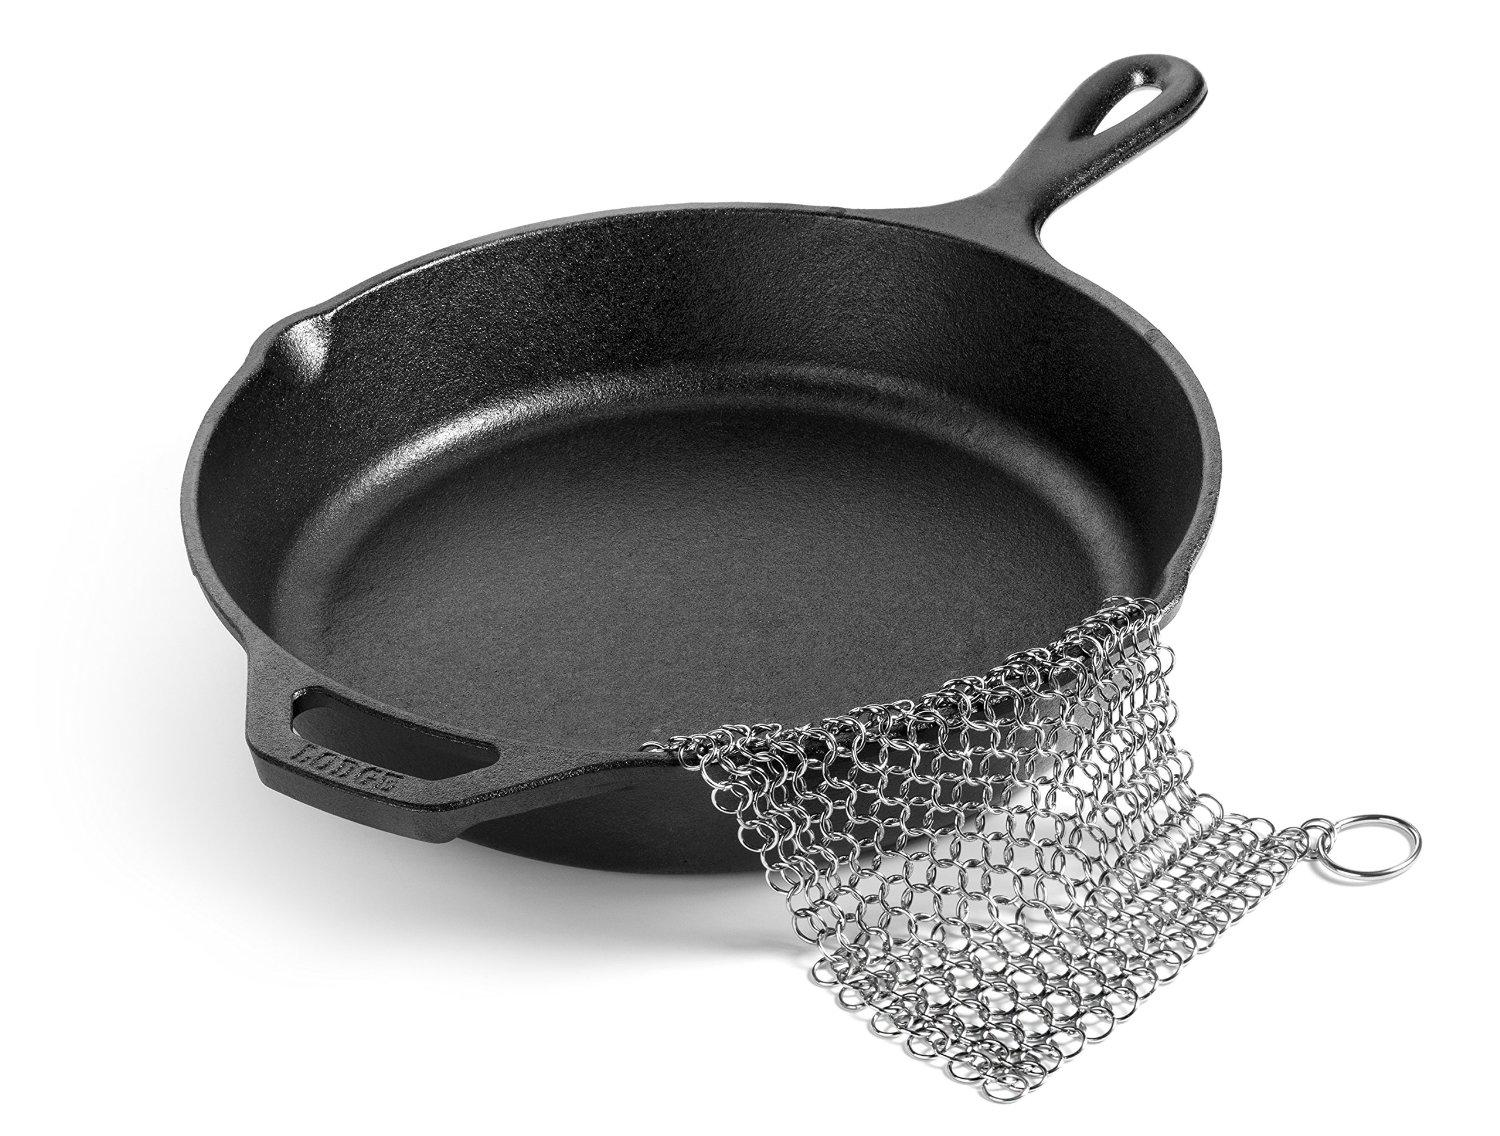 Hudson Essentials Cast Iron Cleaner XL 7x7 Premium Stainless Steel Chainmail Scrubber